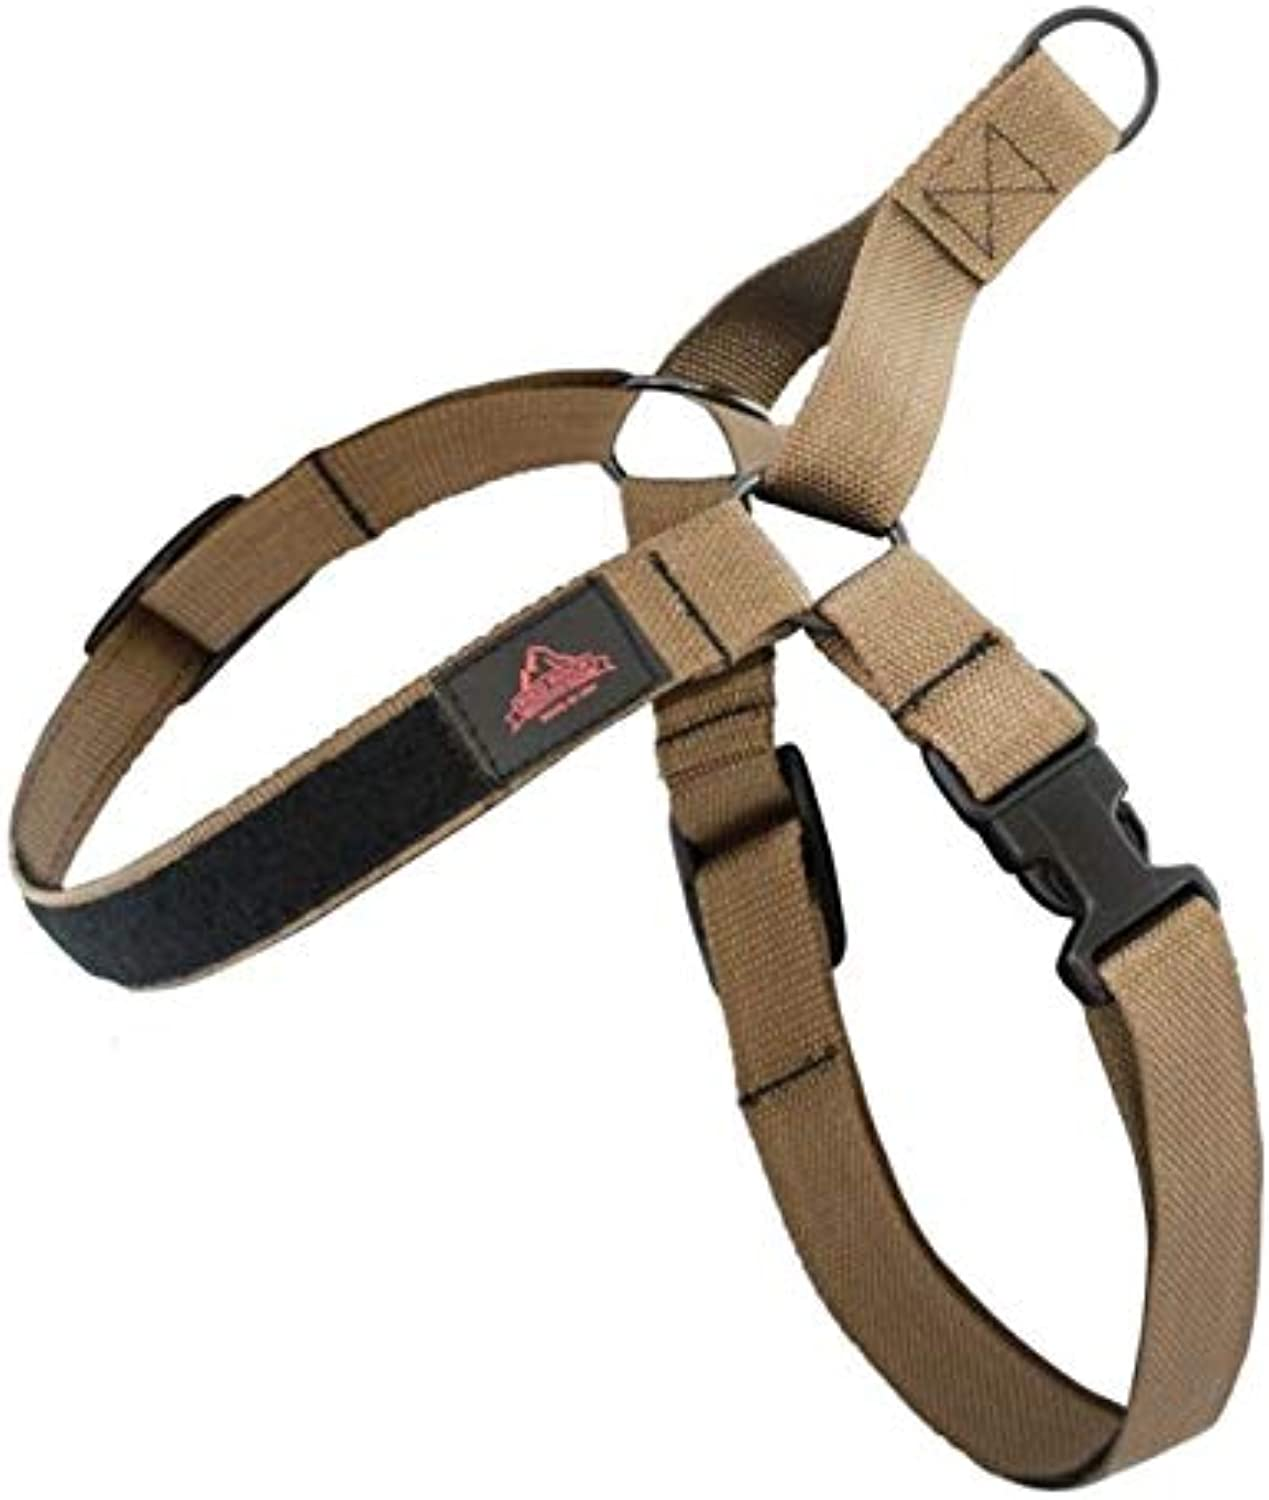 Red Rock Outdoor Gear 3830COYXL Dog Harness Coyote, XLarge